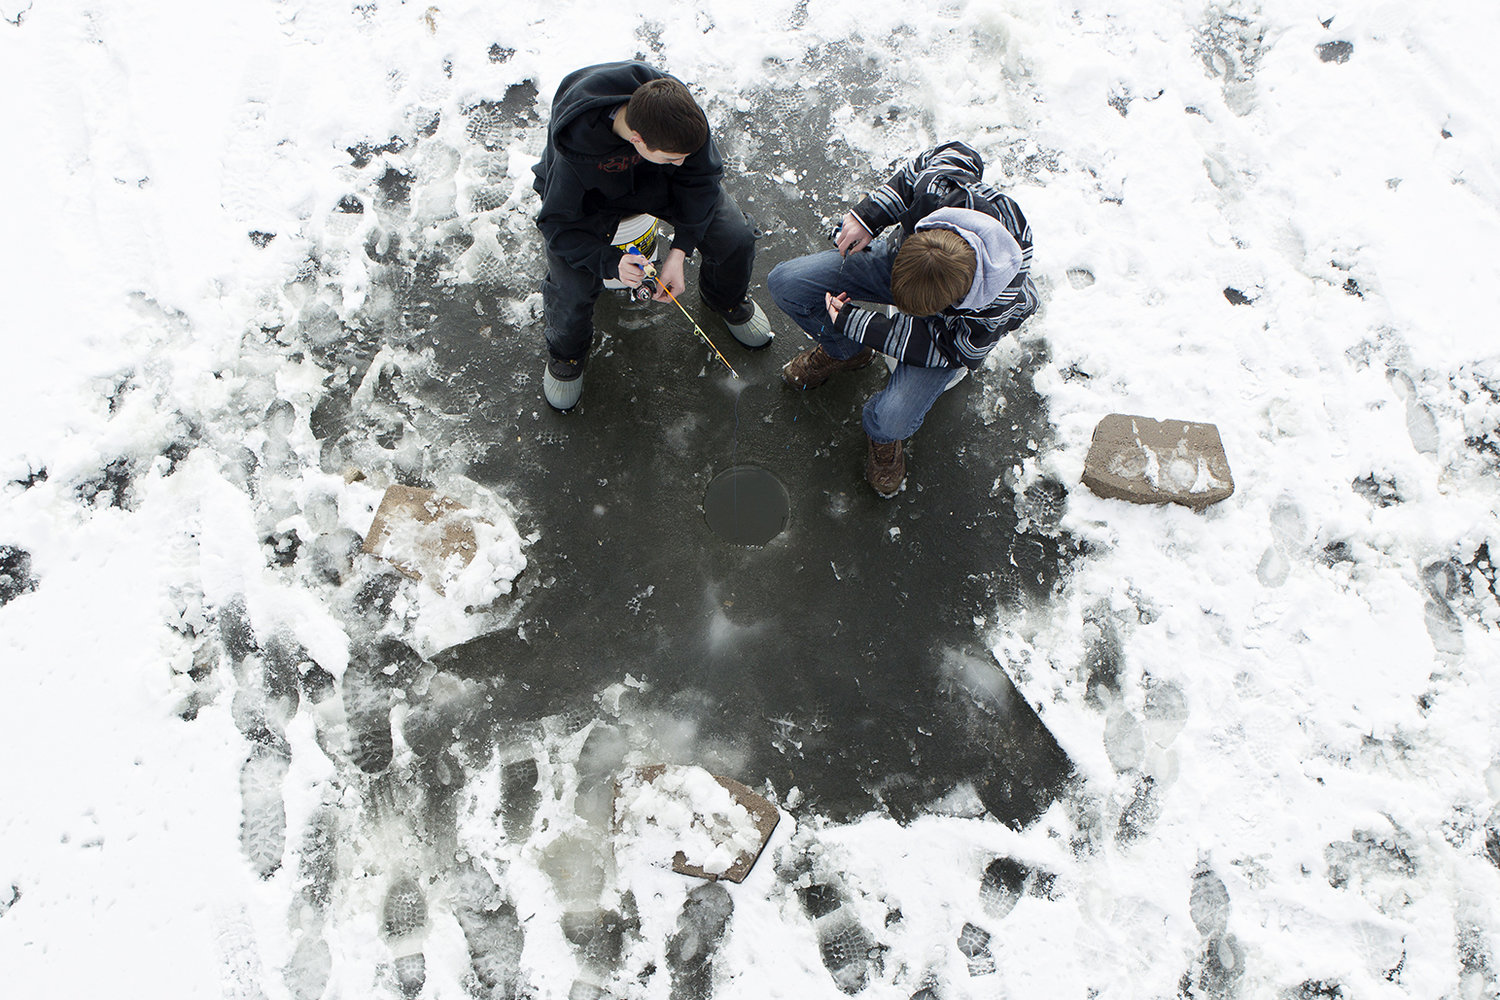 Kain Sherman, left, and Gavin Sidener fish through a hole in the ice on the Gillette Fishing Lake at Dalbey Memorial Park.